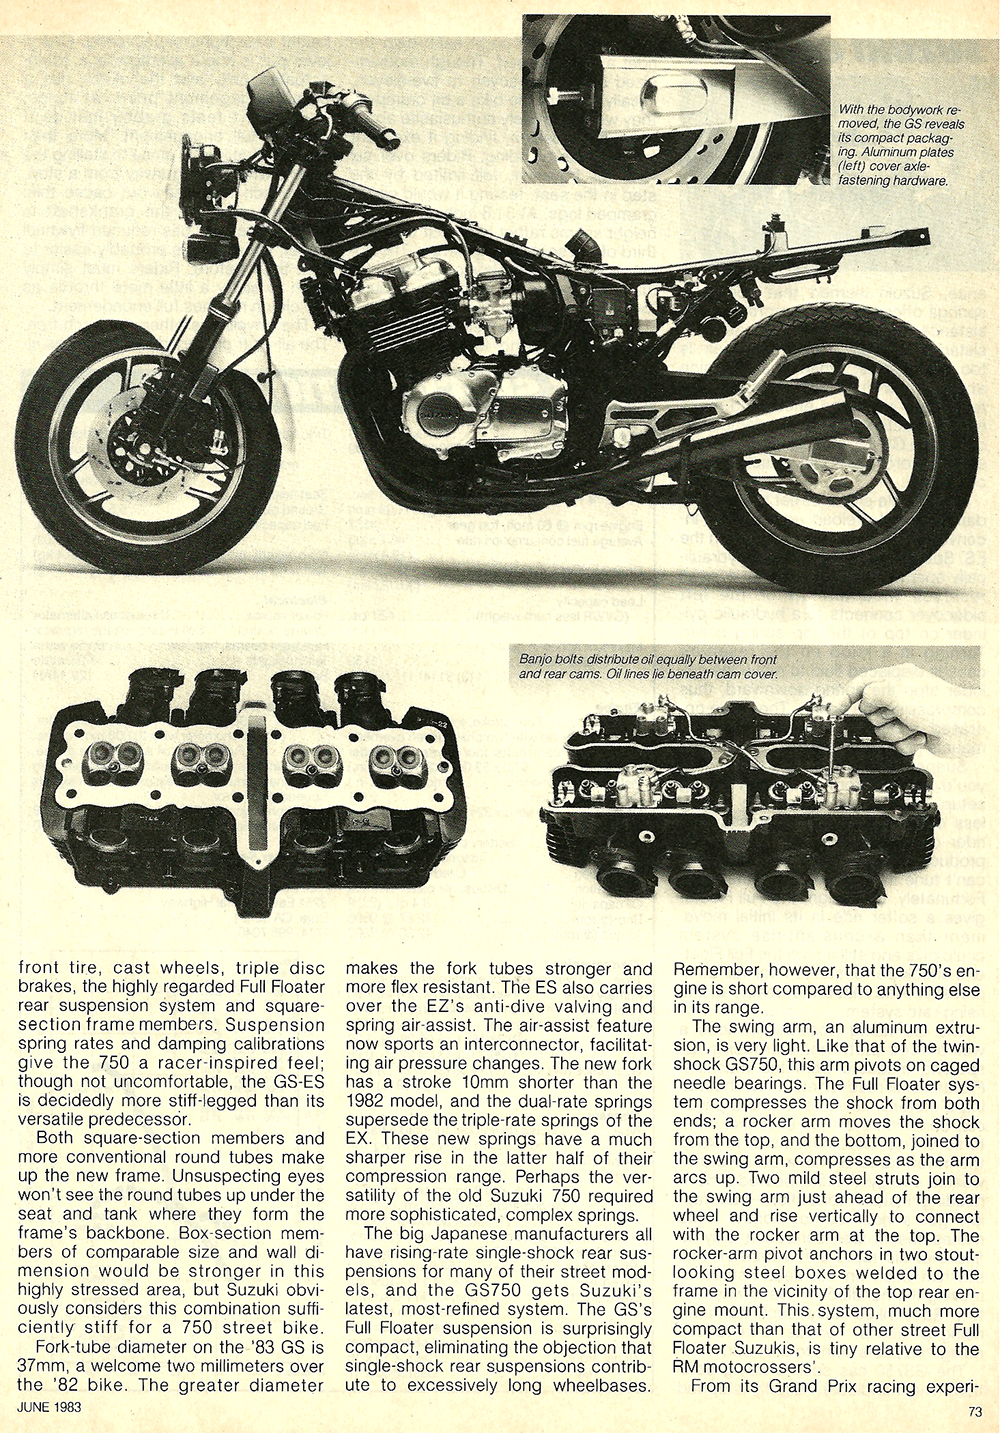 1983 Suzuki GS750ES road test 6.jpg